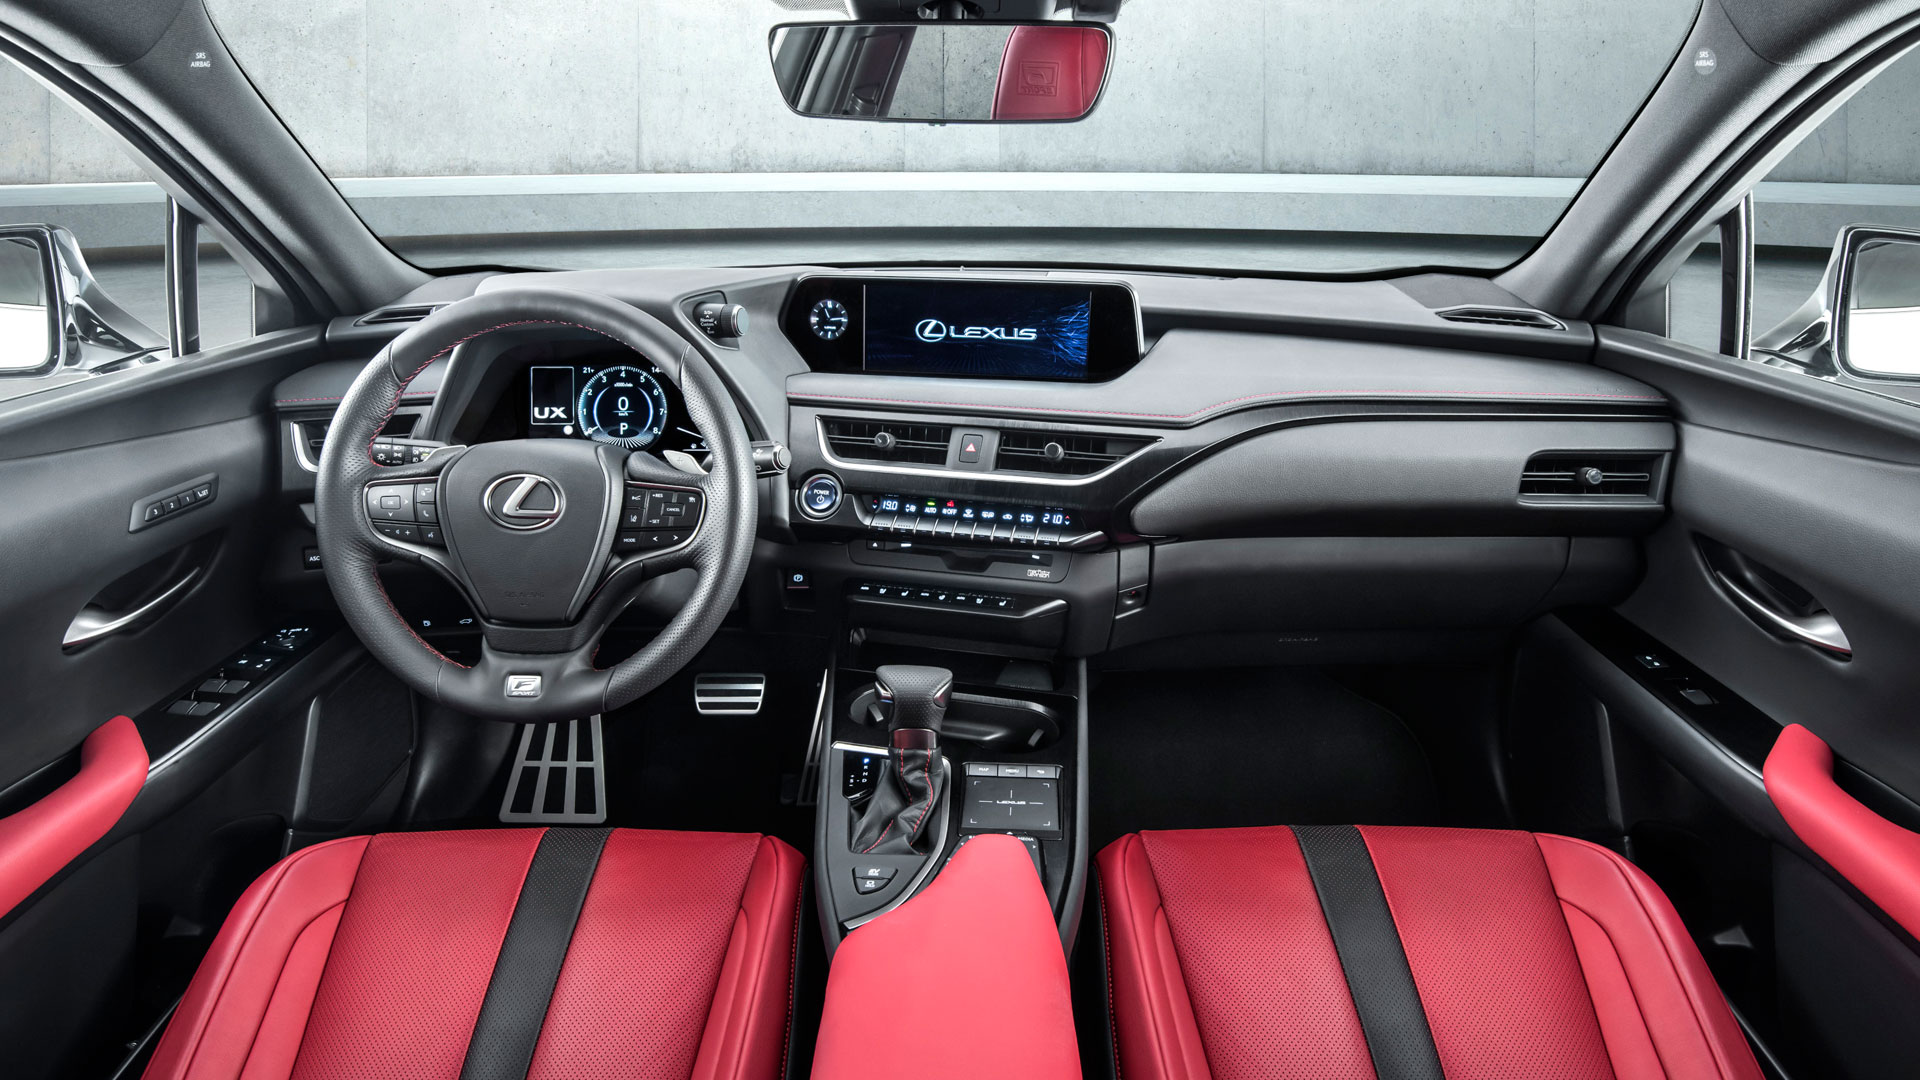 el nuevo lexus ux 250h se presenta en espa a lexus espa a. Black Bedroom Furniture Sets. Home Design Ideas